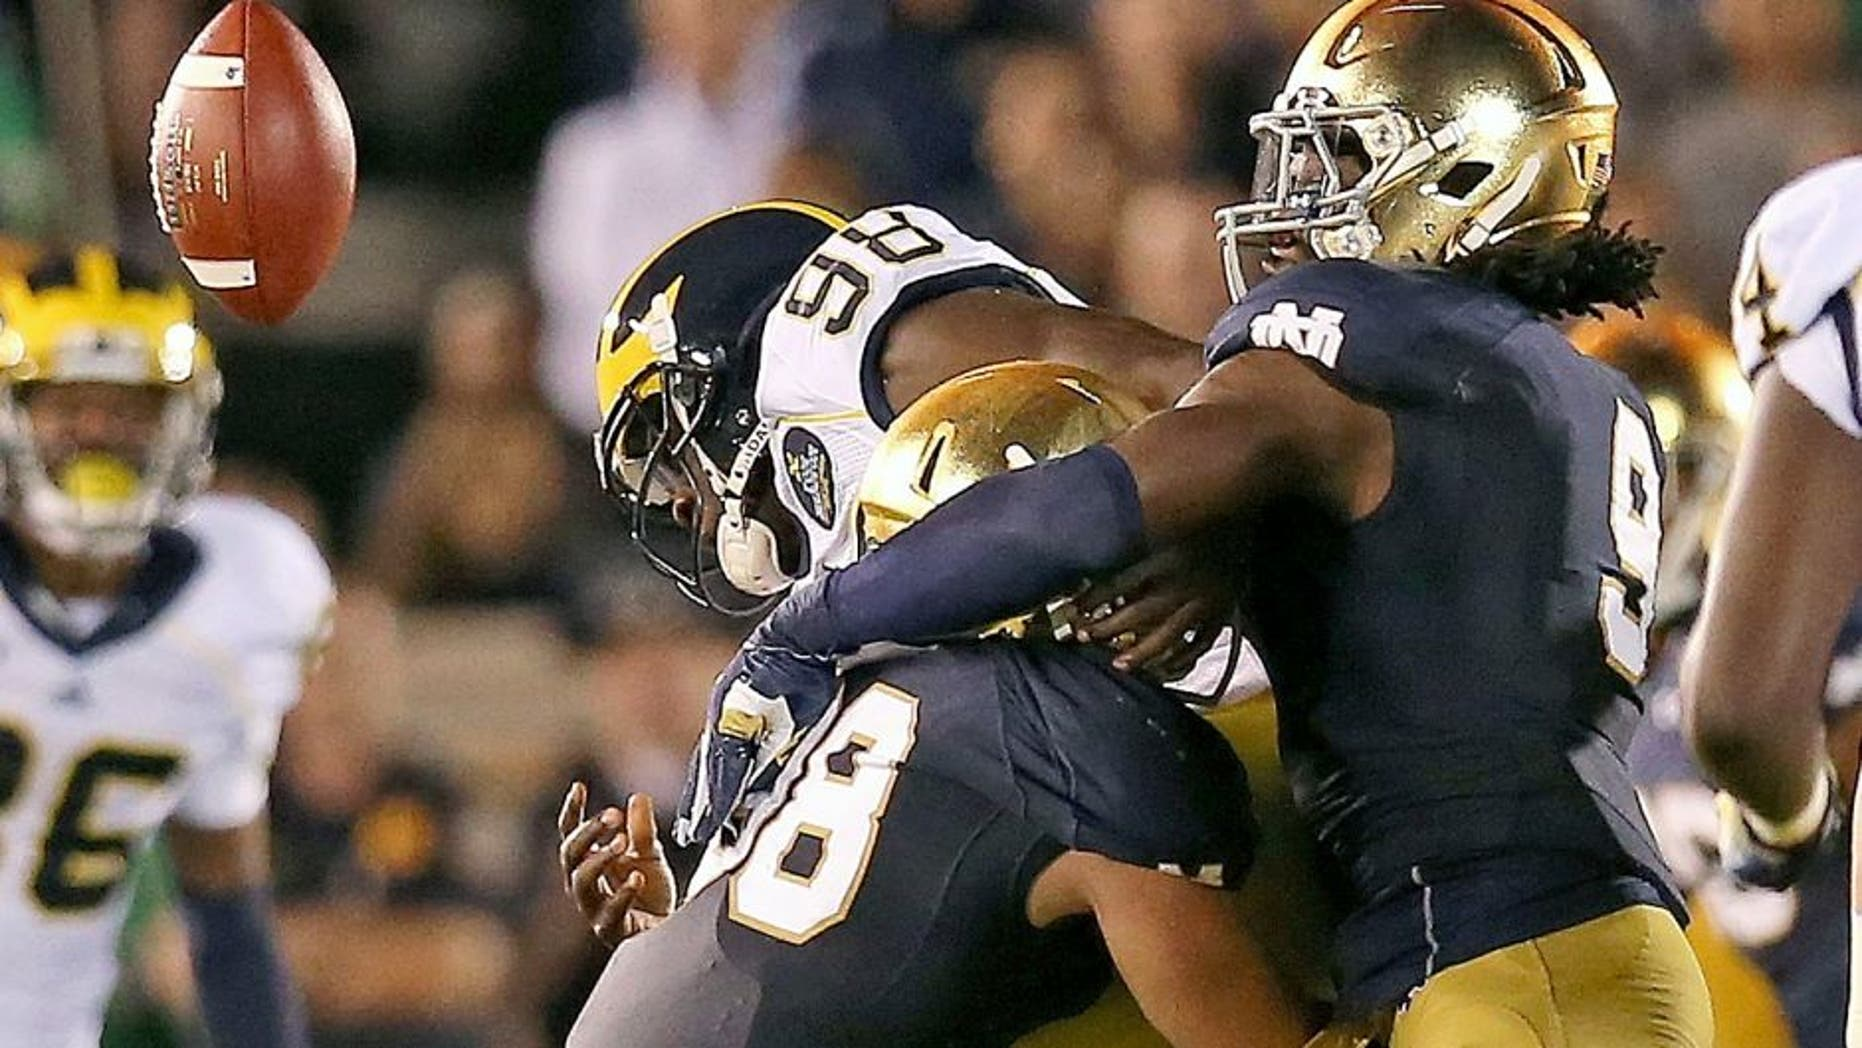 SOUTH BEND, IN - SEPTEMBER 06: Devin Gardner #98 of the Michigan Wolverines fumbles the ball as he is hit by Joe Schmidt #38 (L) abd Jaylon Smith #9 of the Notre Dame Fighting Irish at Notre Dame Stadium on September 6, 2014 in South Bend, Indiana. (Photo by Jonathan Daniel/Getty Images)